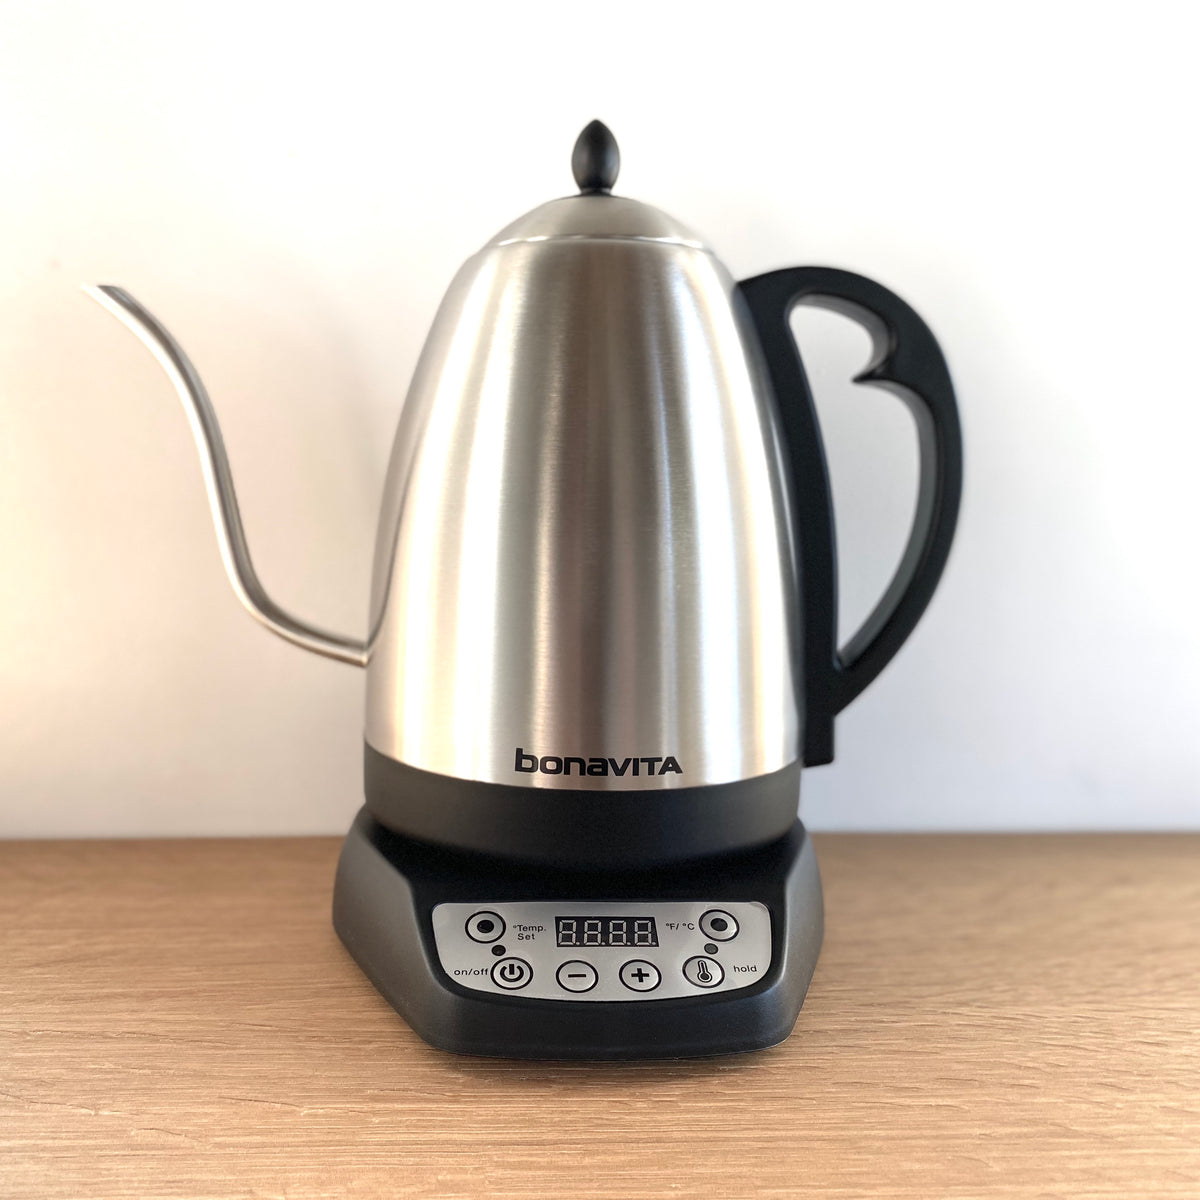 Bonavita 1.7L Variable Temperature Gooseneck Kettle